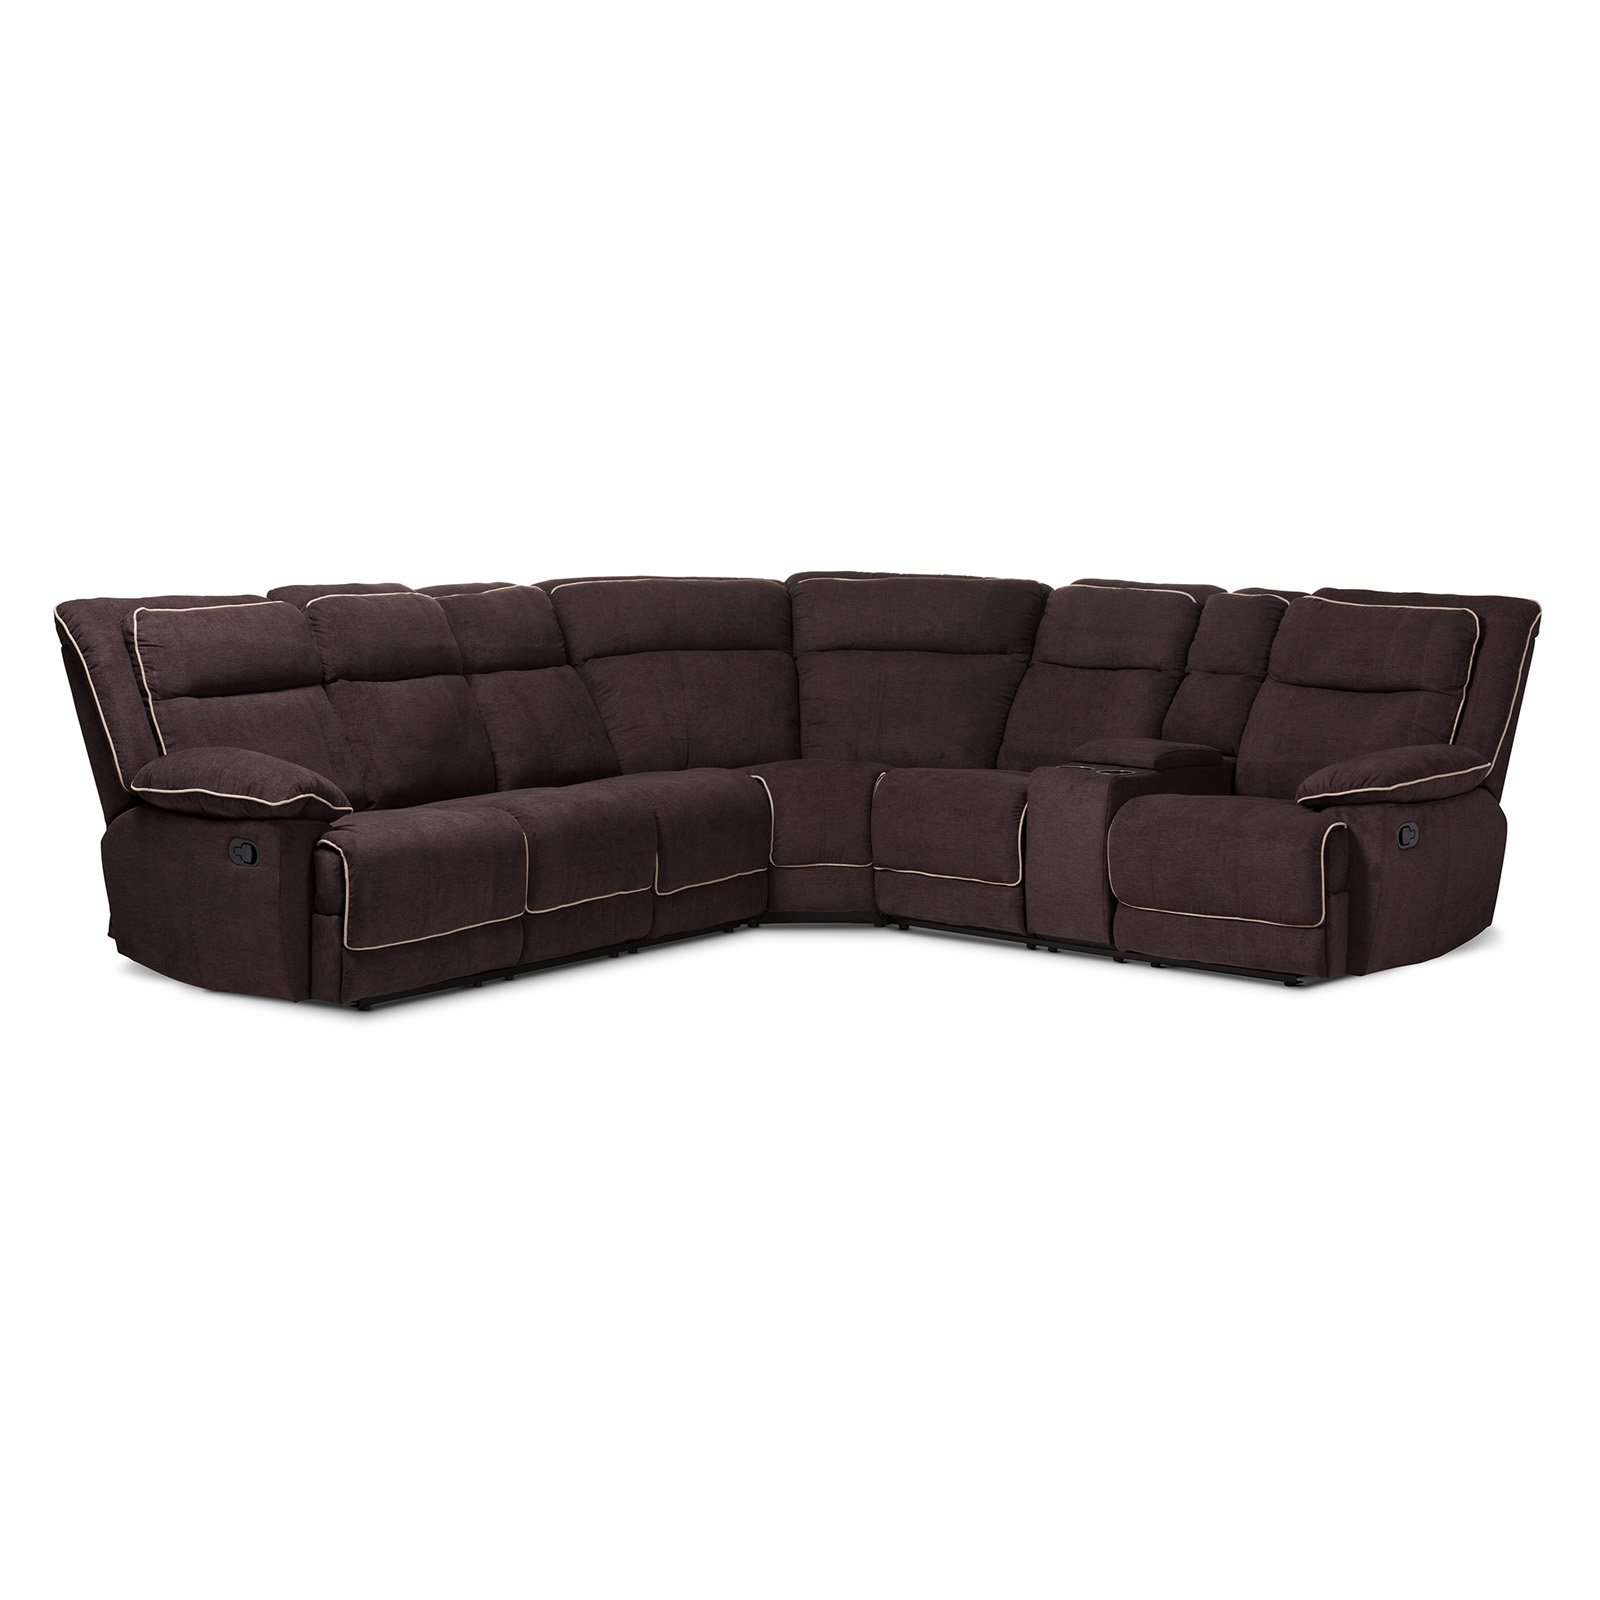 Baxton Studio Sabella Modern And Contemporary Taupe And Chocolate Two Tone  Fabric 7 Piece Reclining Sectional